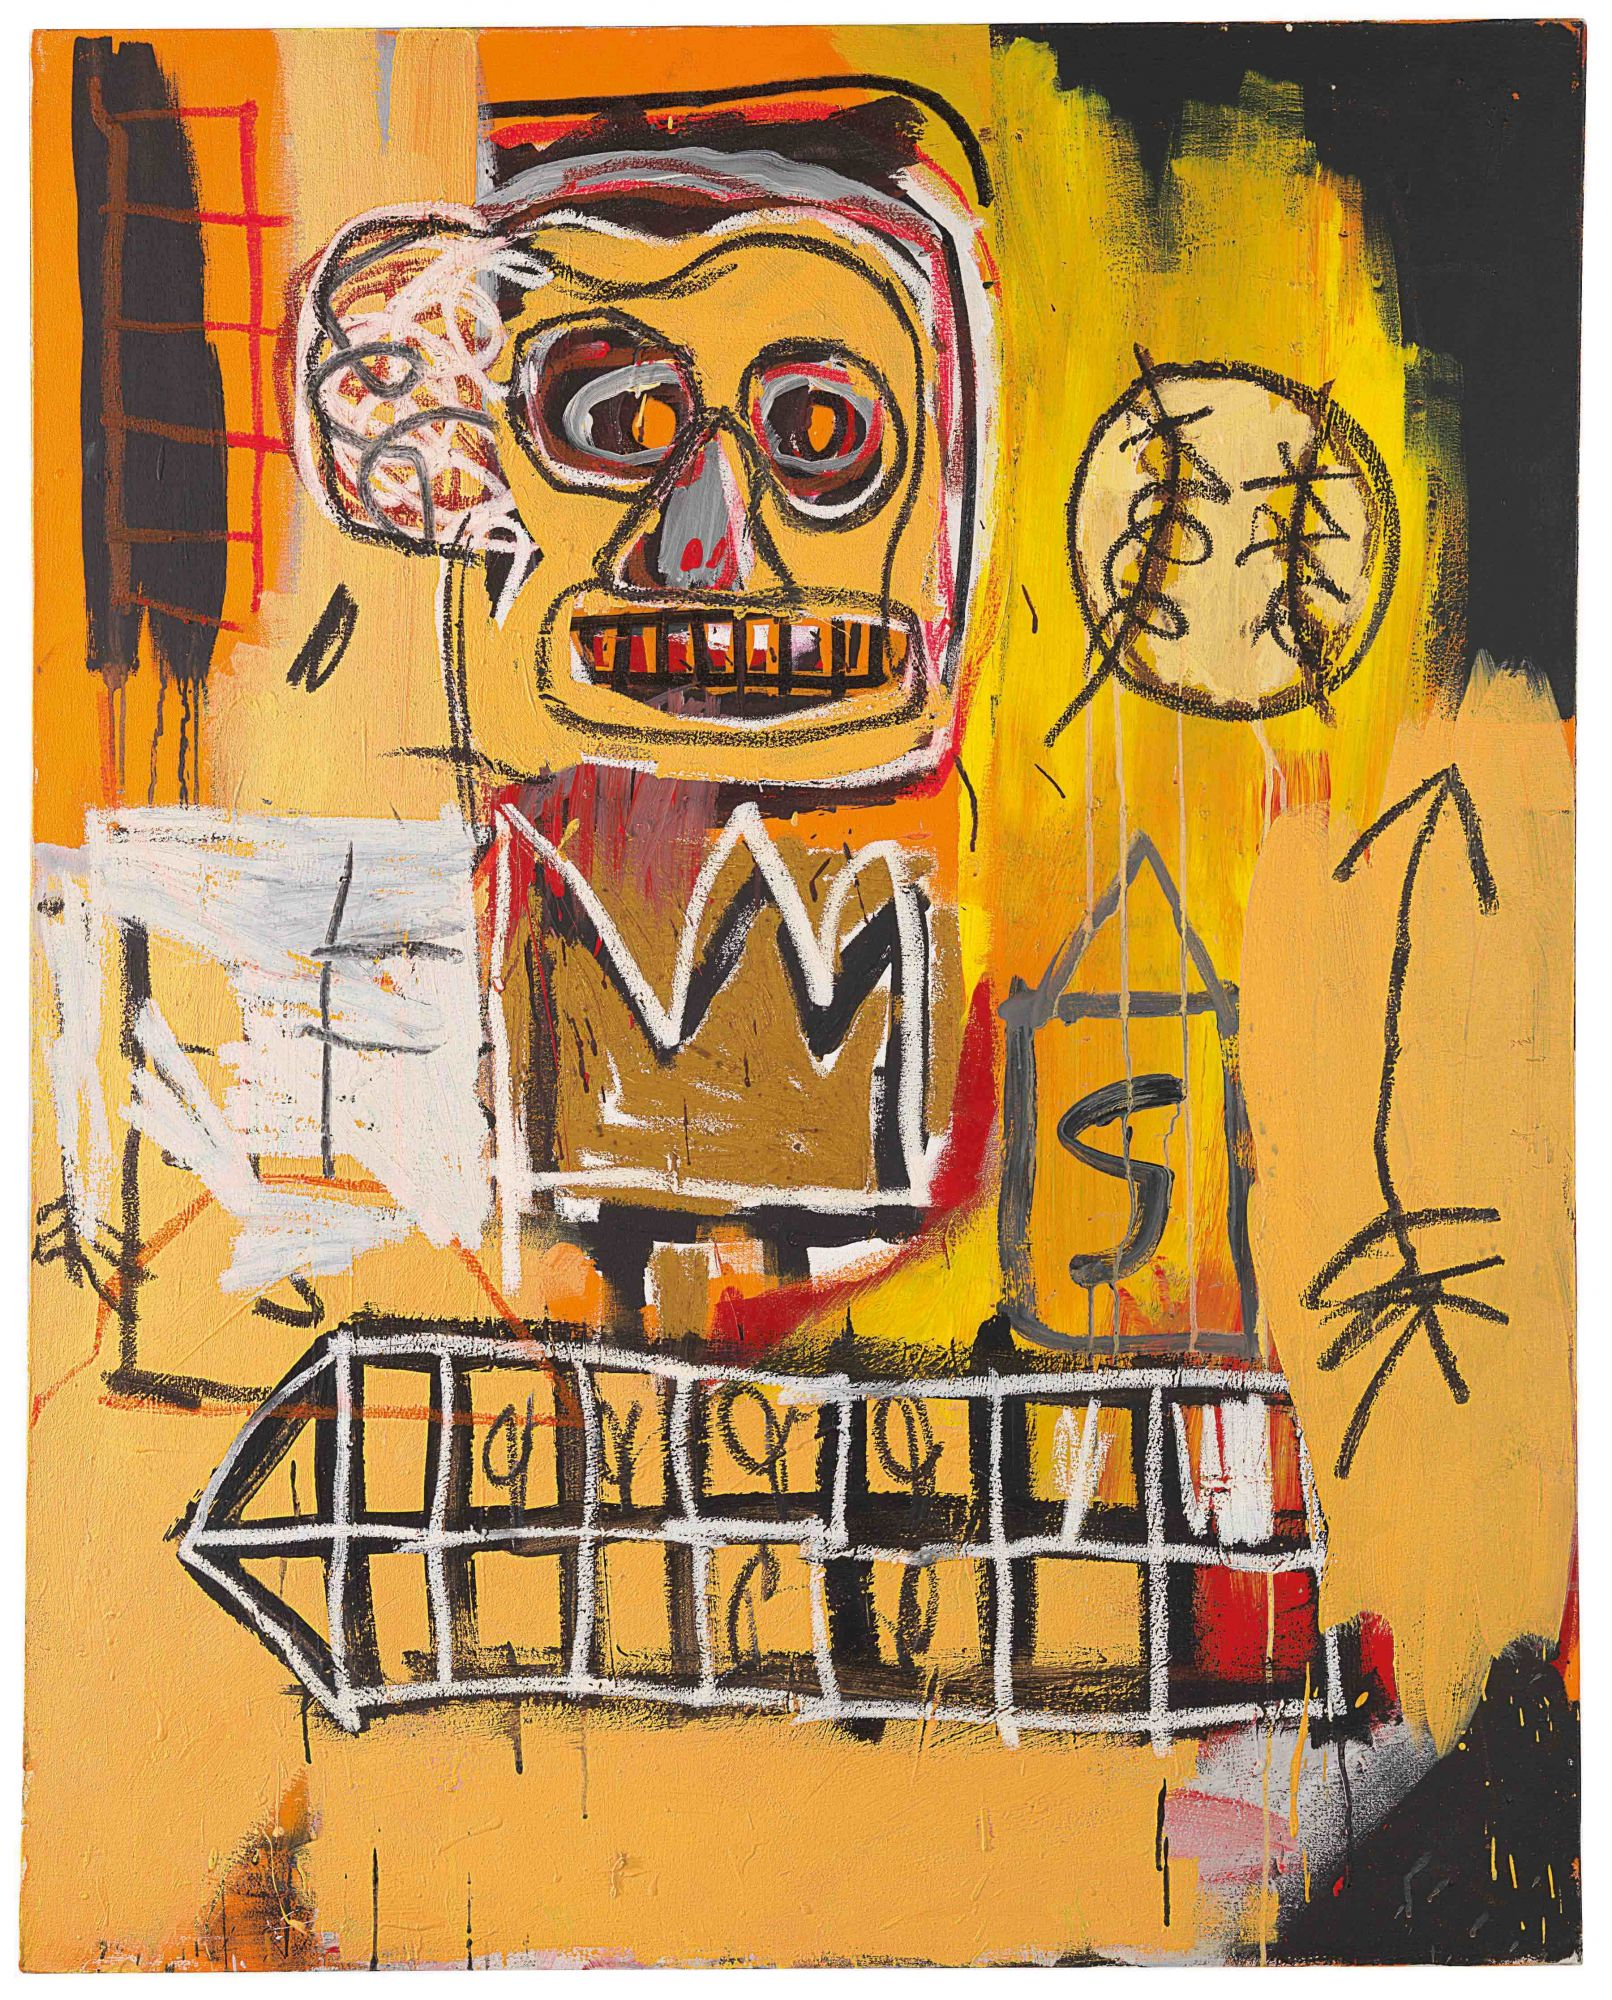 """Untitled (Orange Sports Figure)"" by Jean-Michel Basquiat is estimated to sell for HK$62 million—94 million. The crowd will be keeping their eyes peeled for Japanese collector Yusaku Maezawa, who set the auction record for a Basquiat painting when he bought one for US$110 million in 2017."